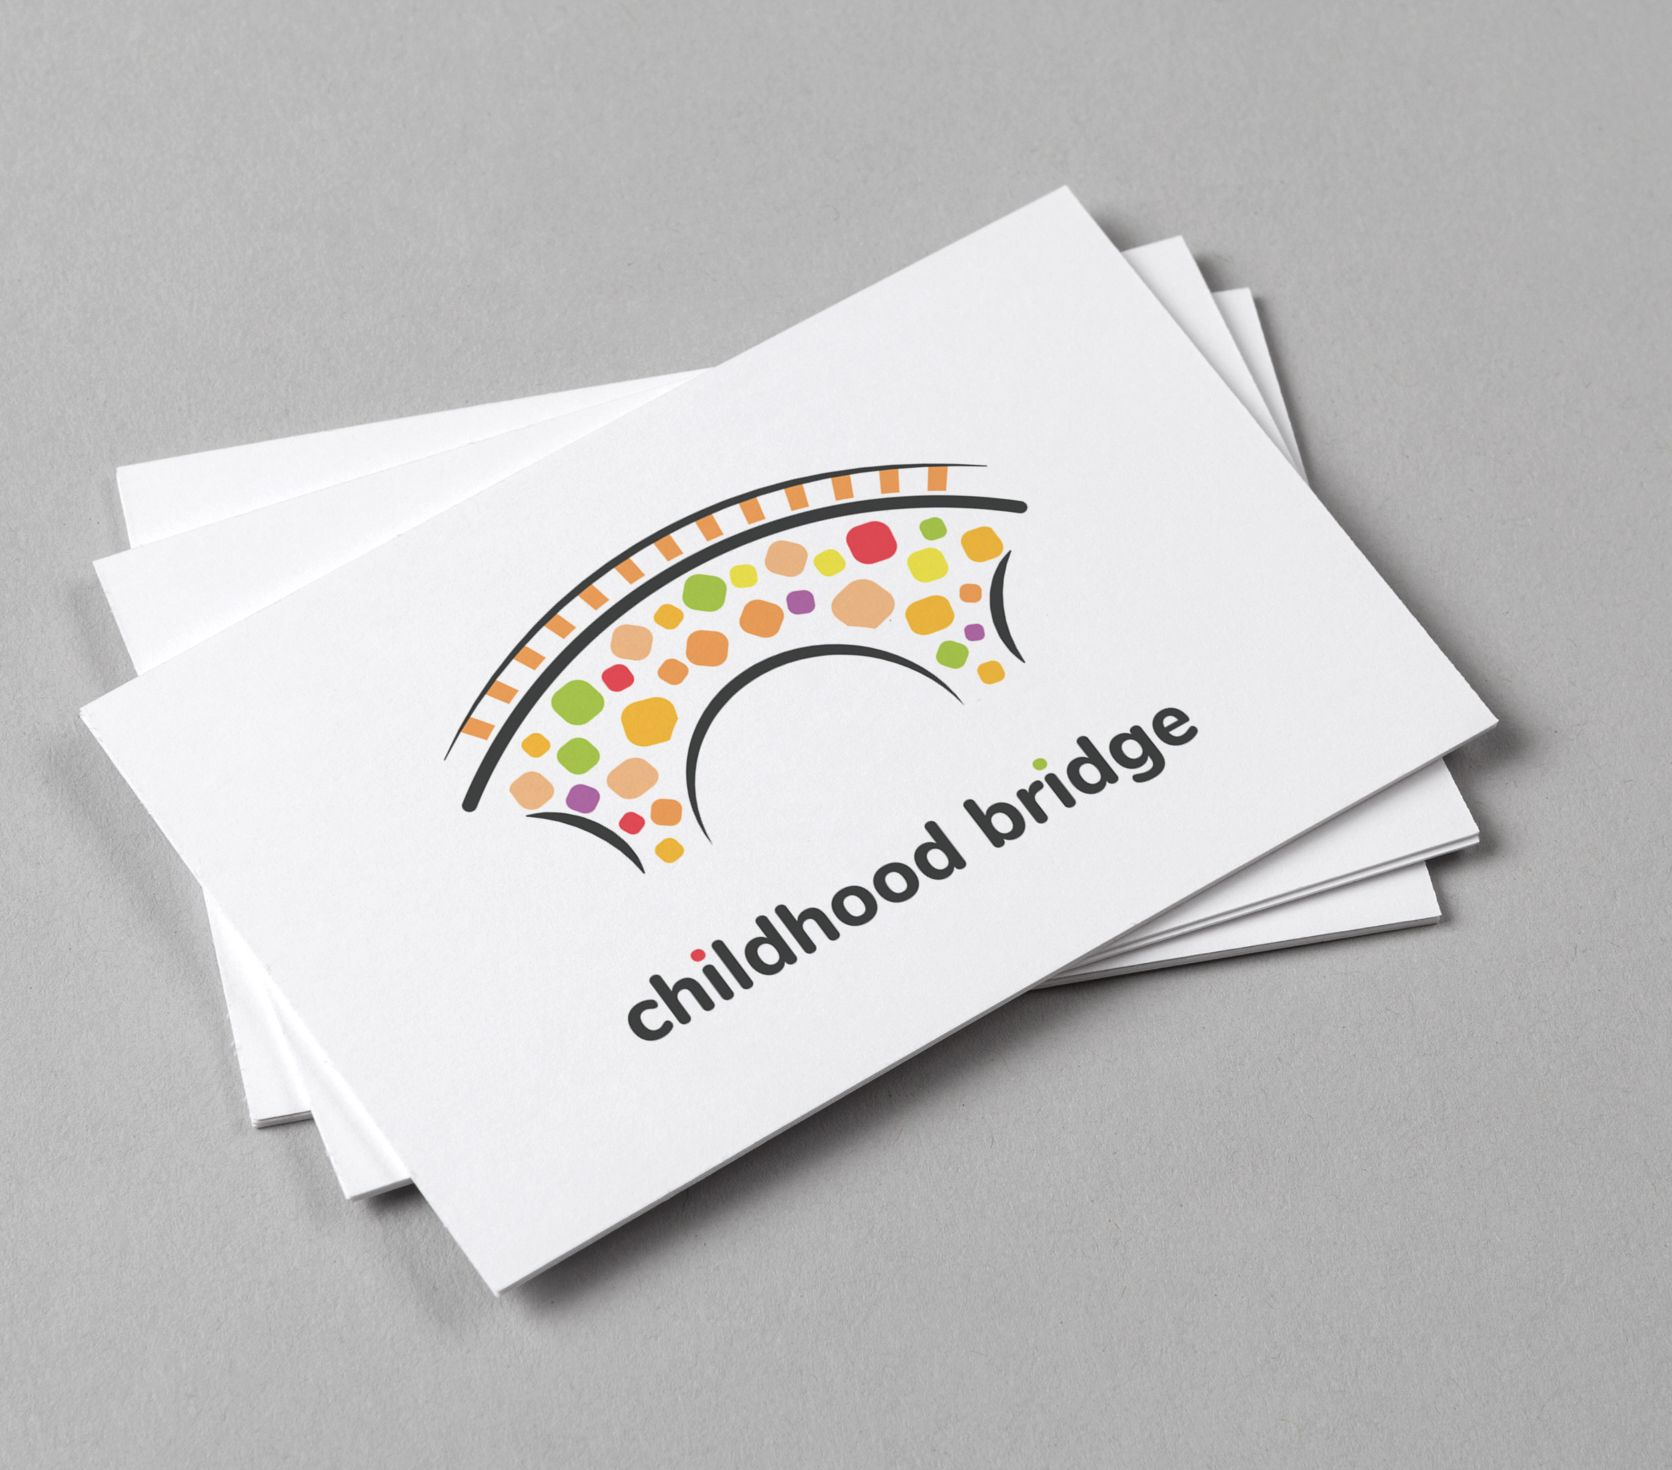 Childhood Bridge Logo